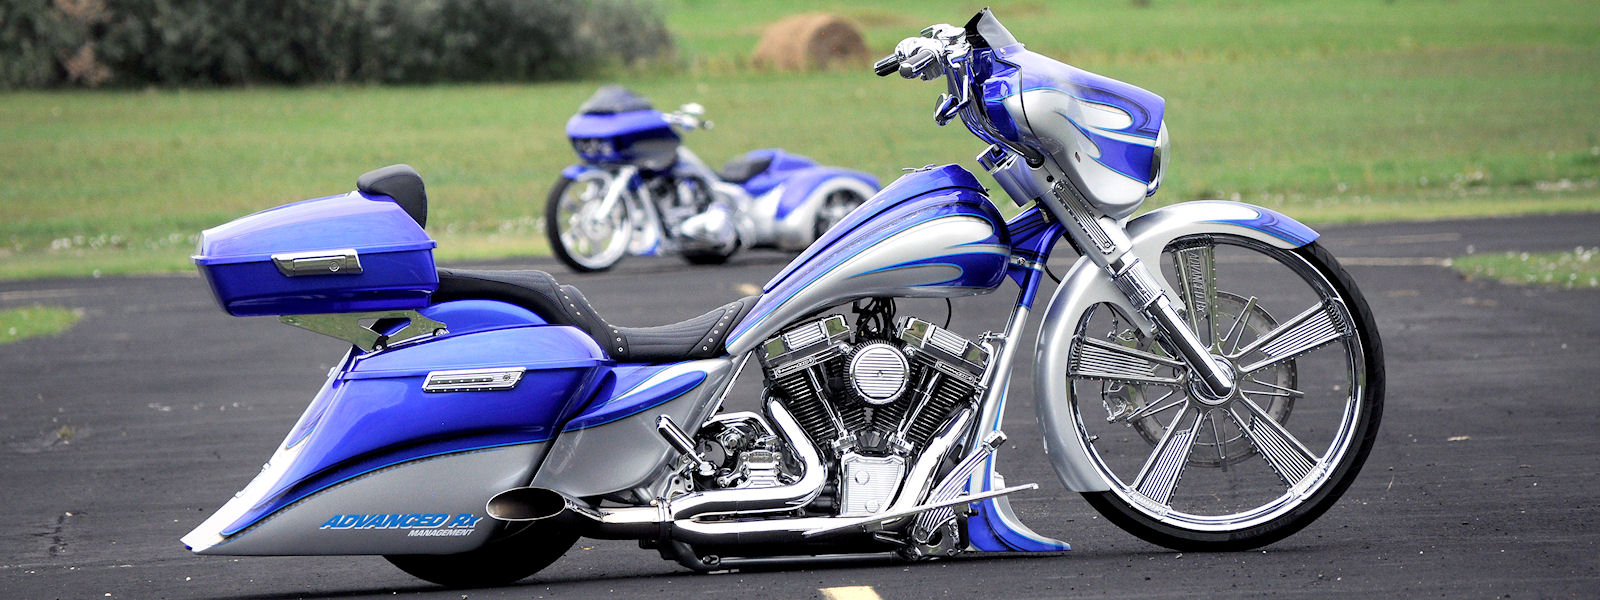 Electra Glo Keystone Auxiliary Led Run Brake Turn L further Harley Launch New Versatile Softail Sport Glide moreover Watch furthermore Watch together with 2016 Electra Glide Ultra Classic. on harley davidson street glide